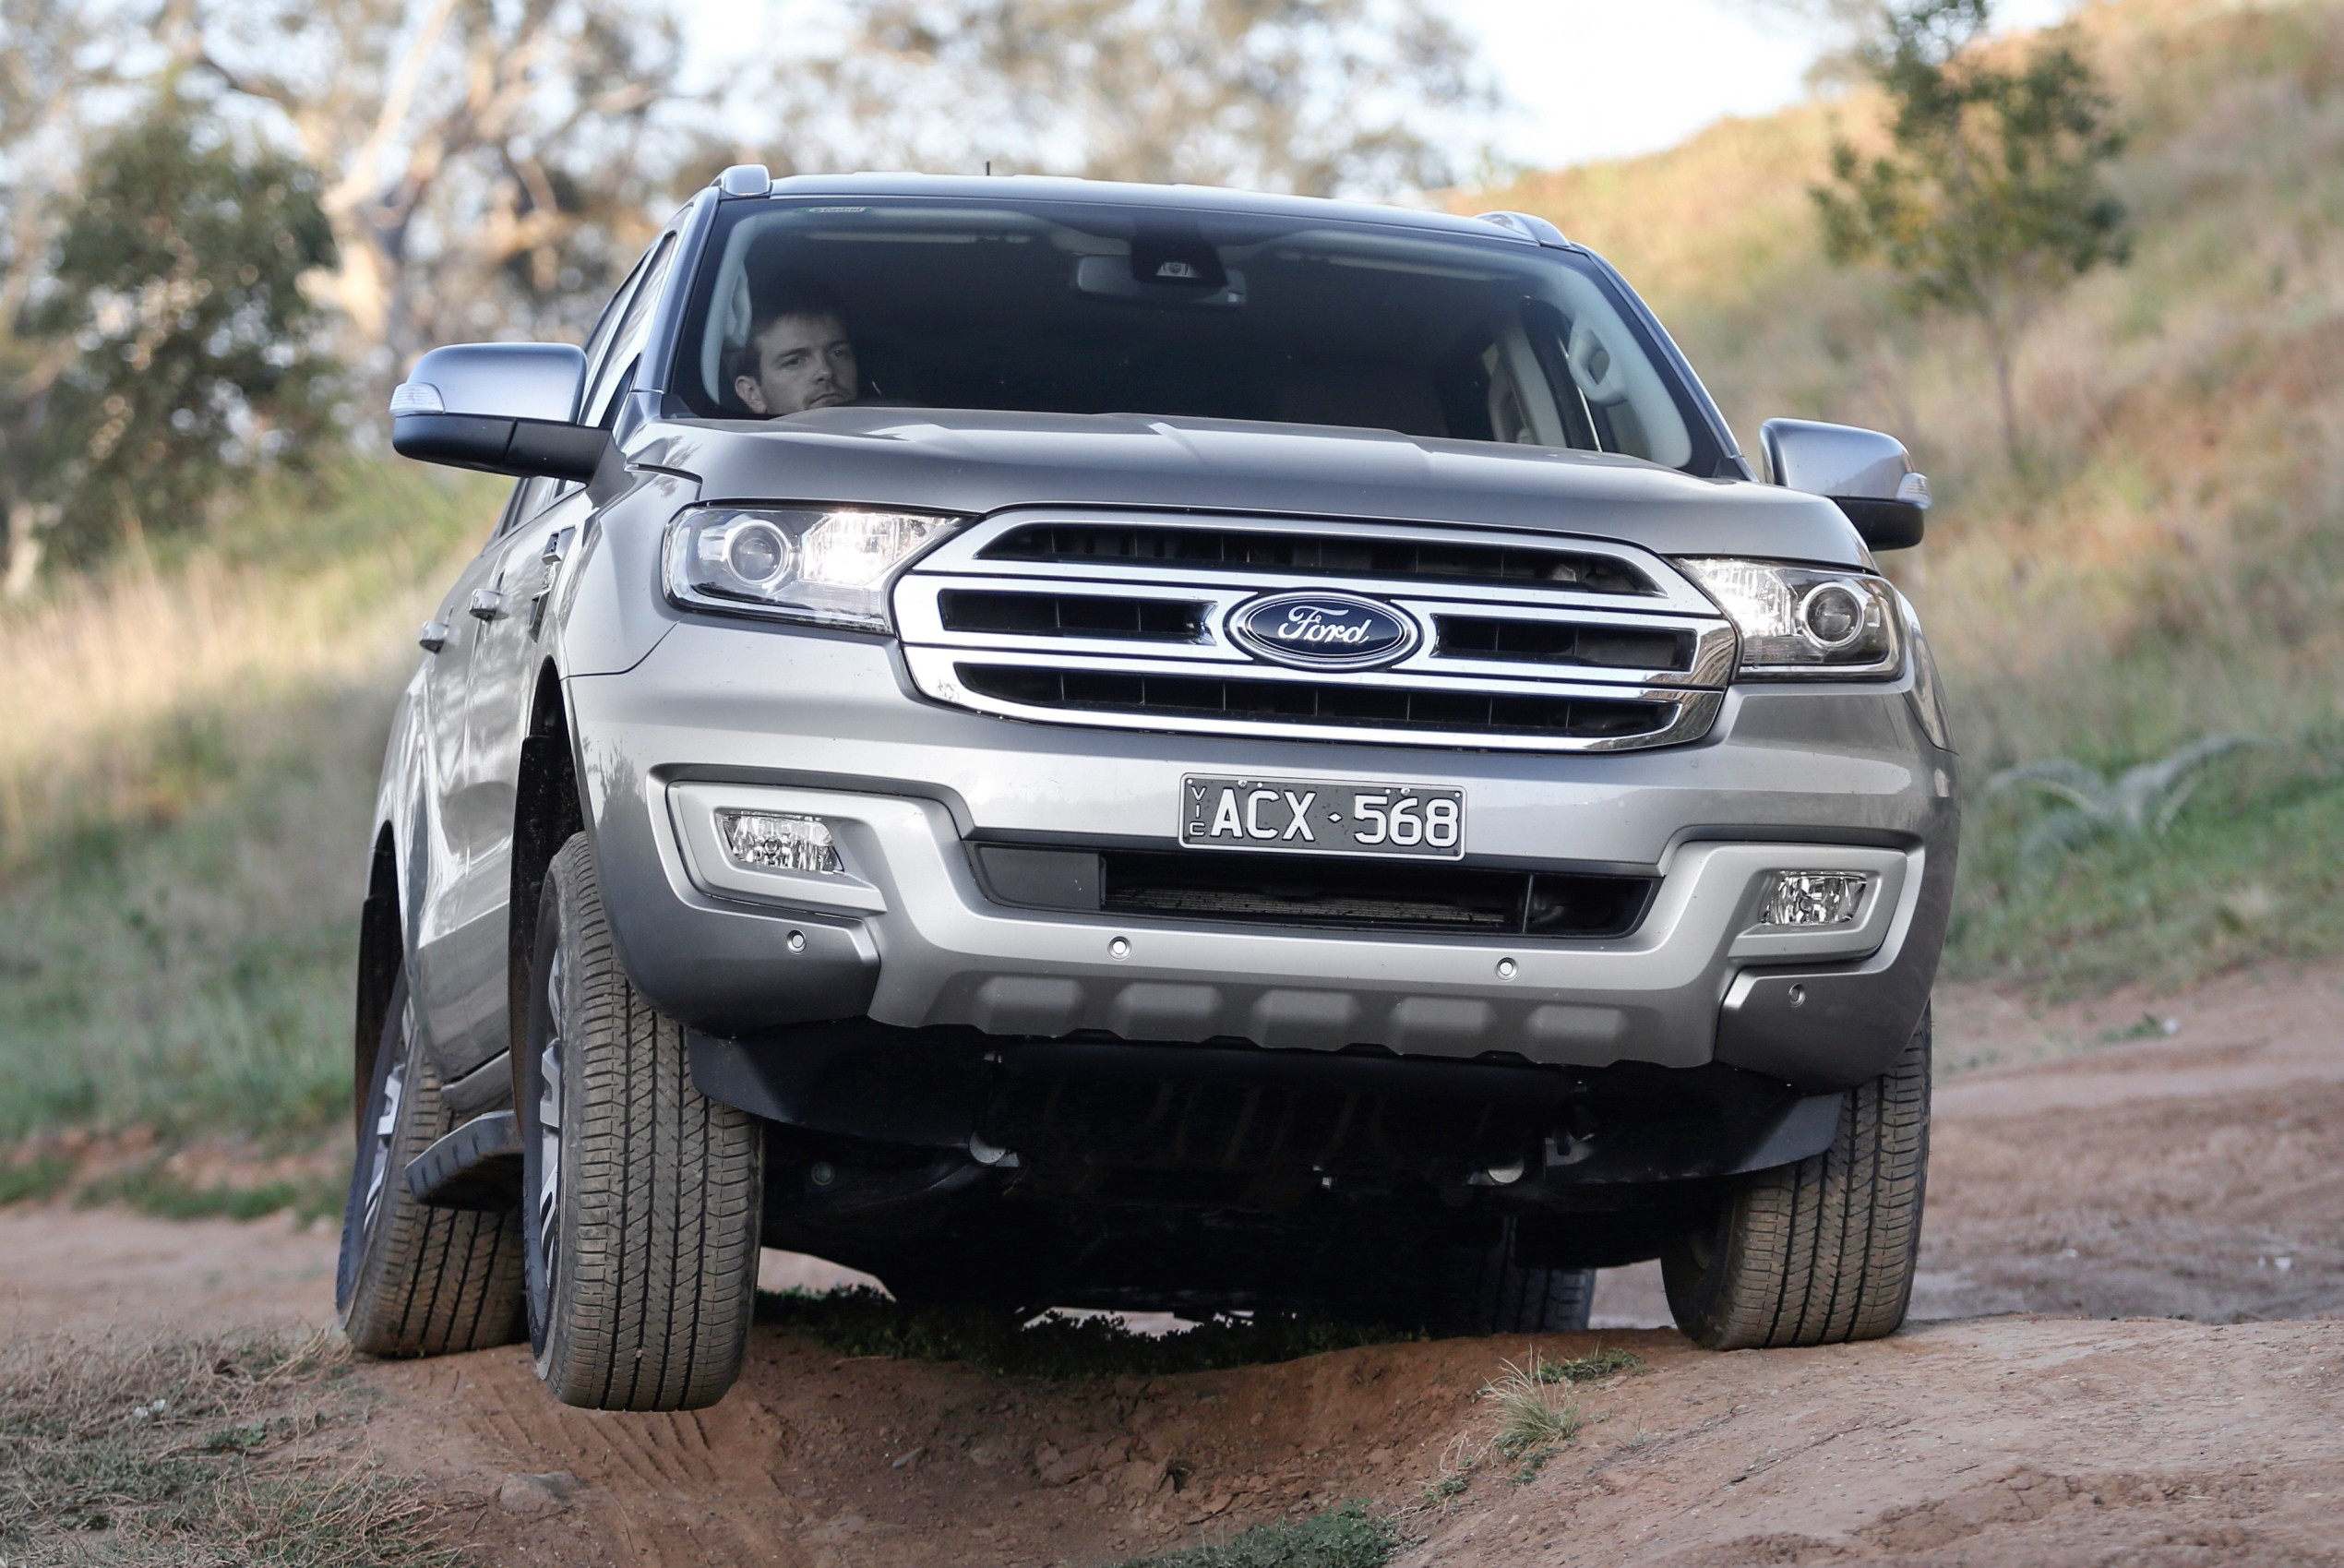 Ford Bronco Spy Shots >> 2020 Ford Bronco Test Mule Spied Flaunting Everest Body Shell - autoevolution